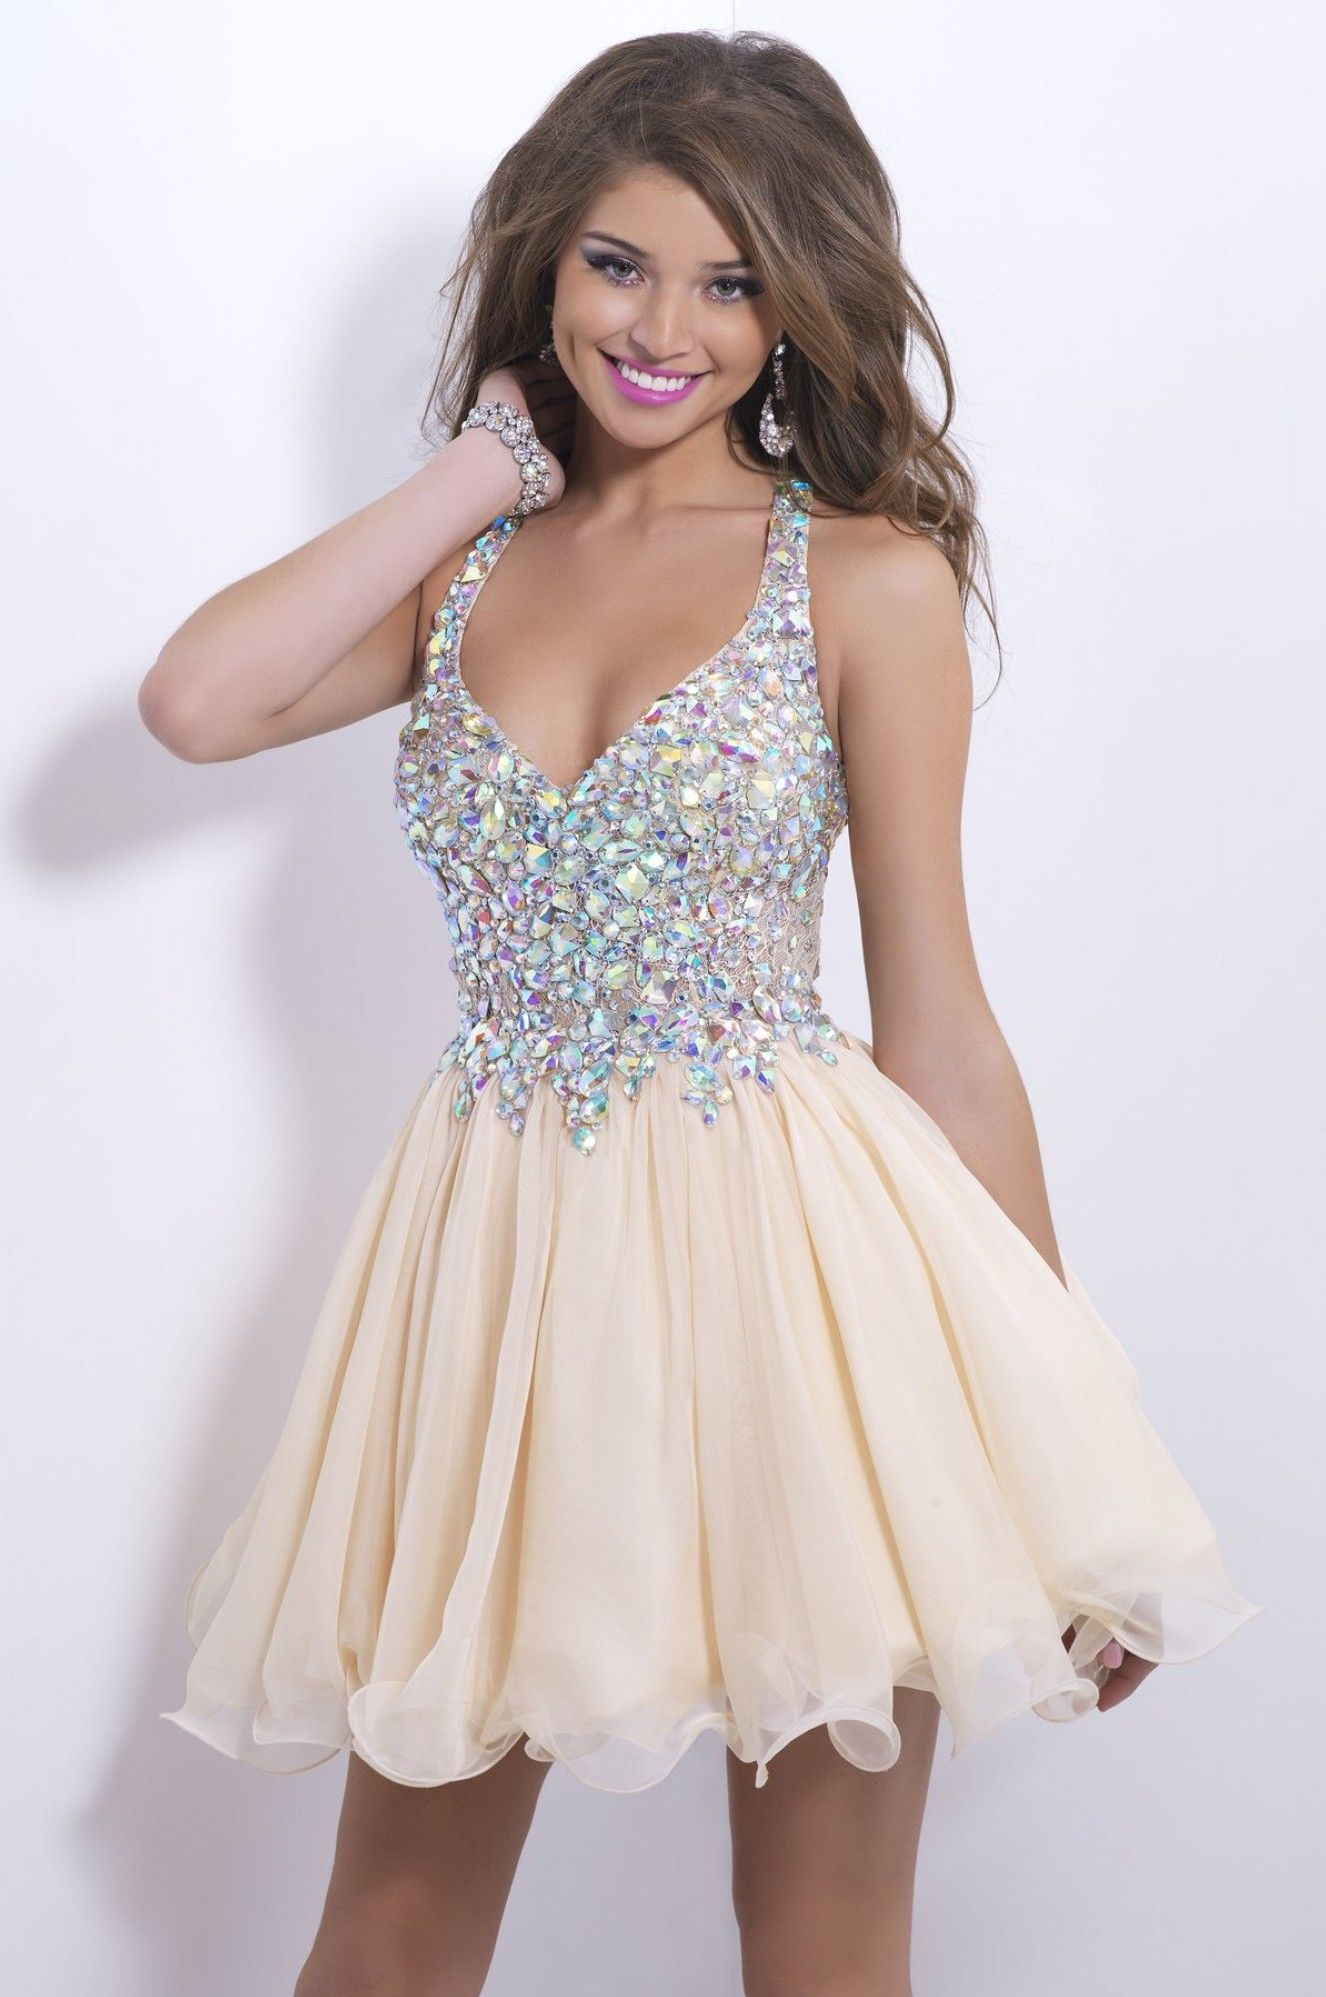 64.9 --In Stock 6 Colors sparkly Rhinestone crystal short homecoming  dresses 2015 8ca5b49e7